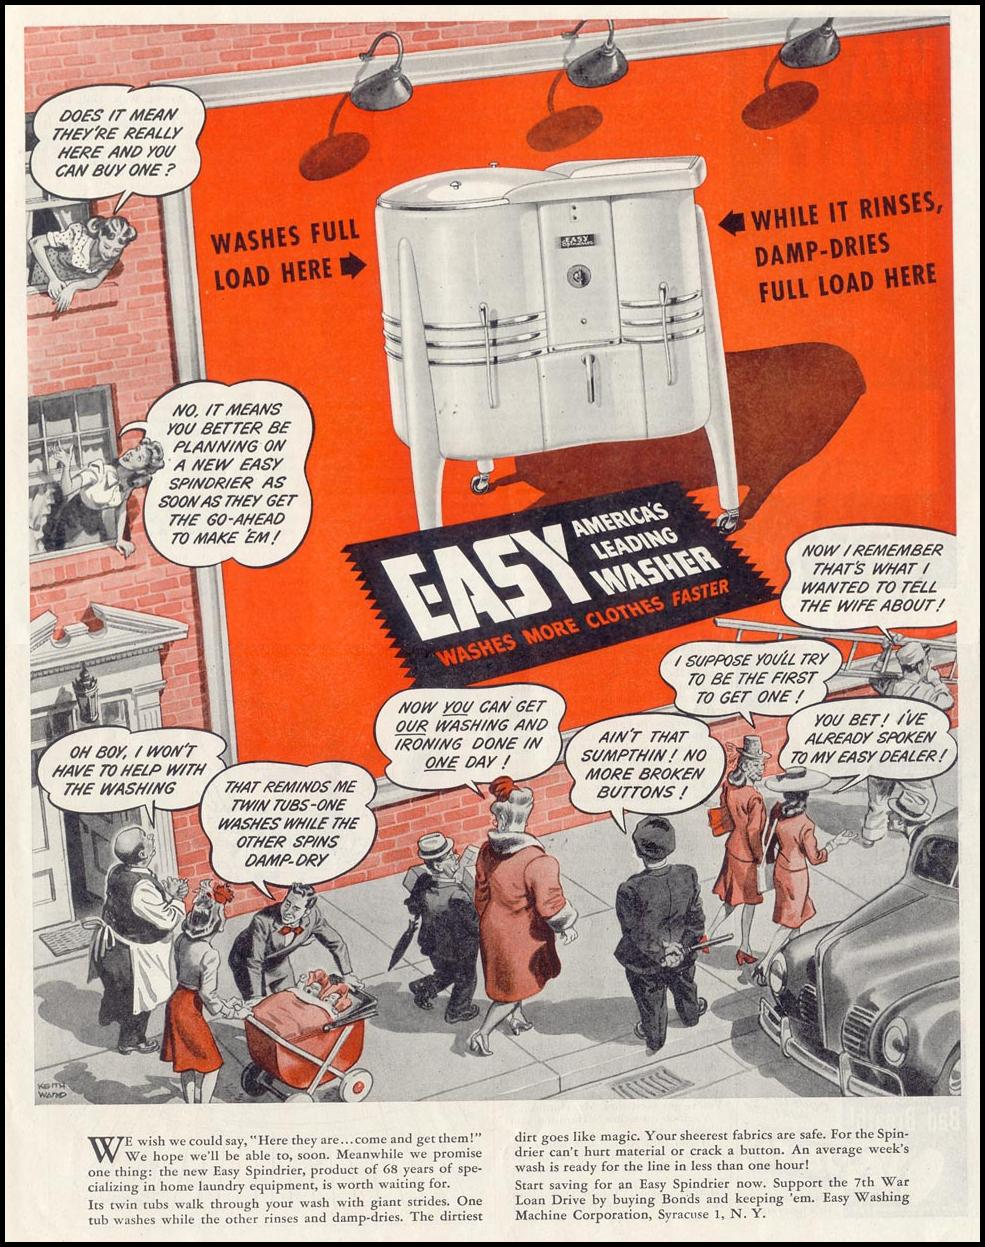 EASY SPINDRIER WASHING MACHINE